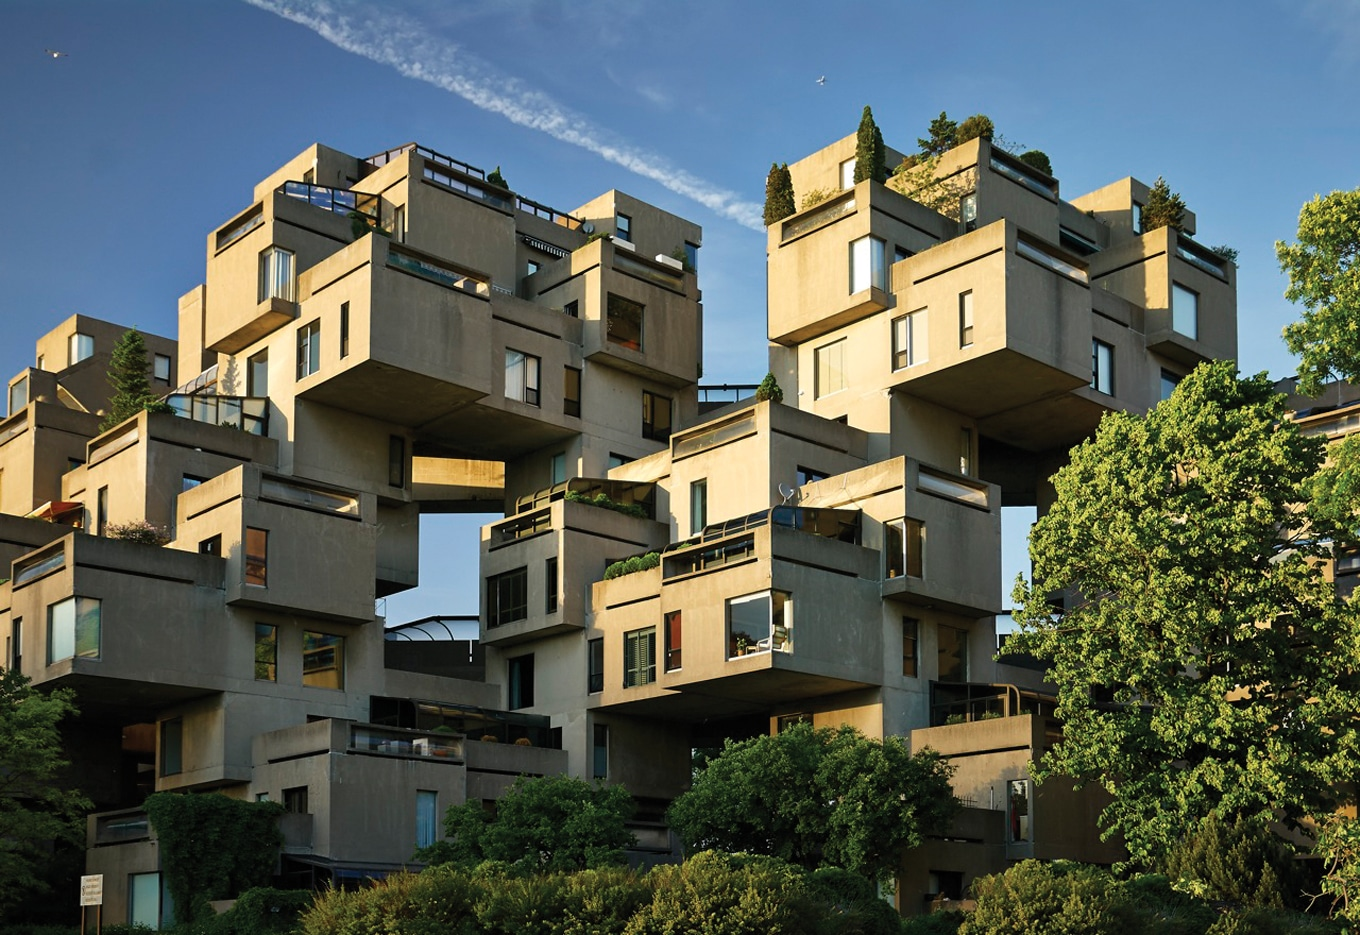 Modular residences of Habitat 67